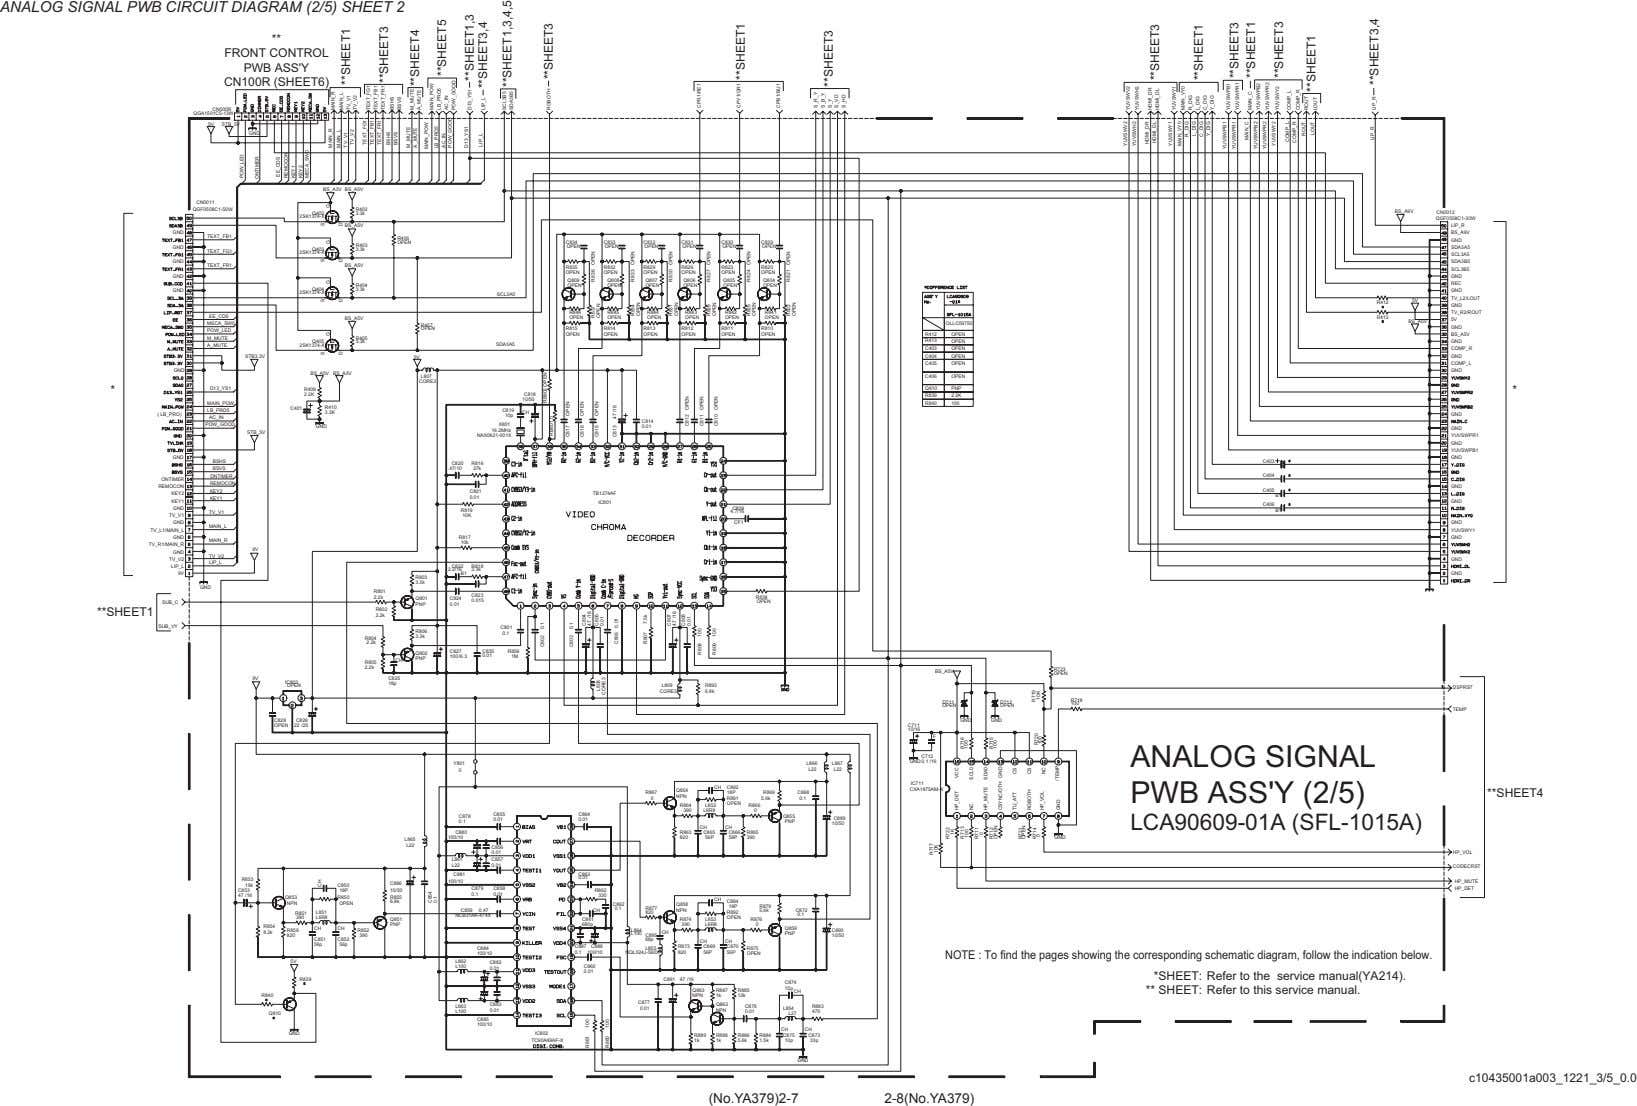 ANALOG SIGNAL PWB CIRCUIT DIAGRAM (2/5) SHEET 2 ** FRONT CONTROL PWB ASS'Y CN100R (SHEET6) CN000R